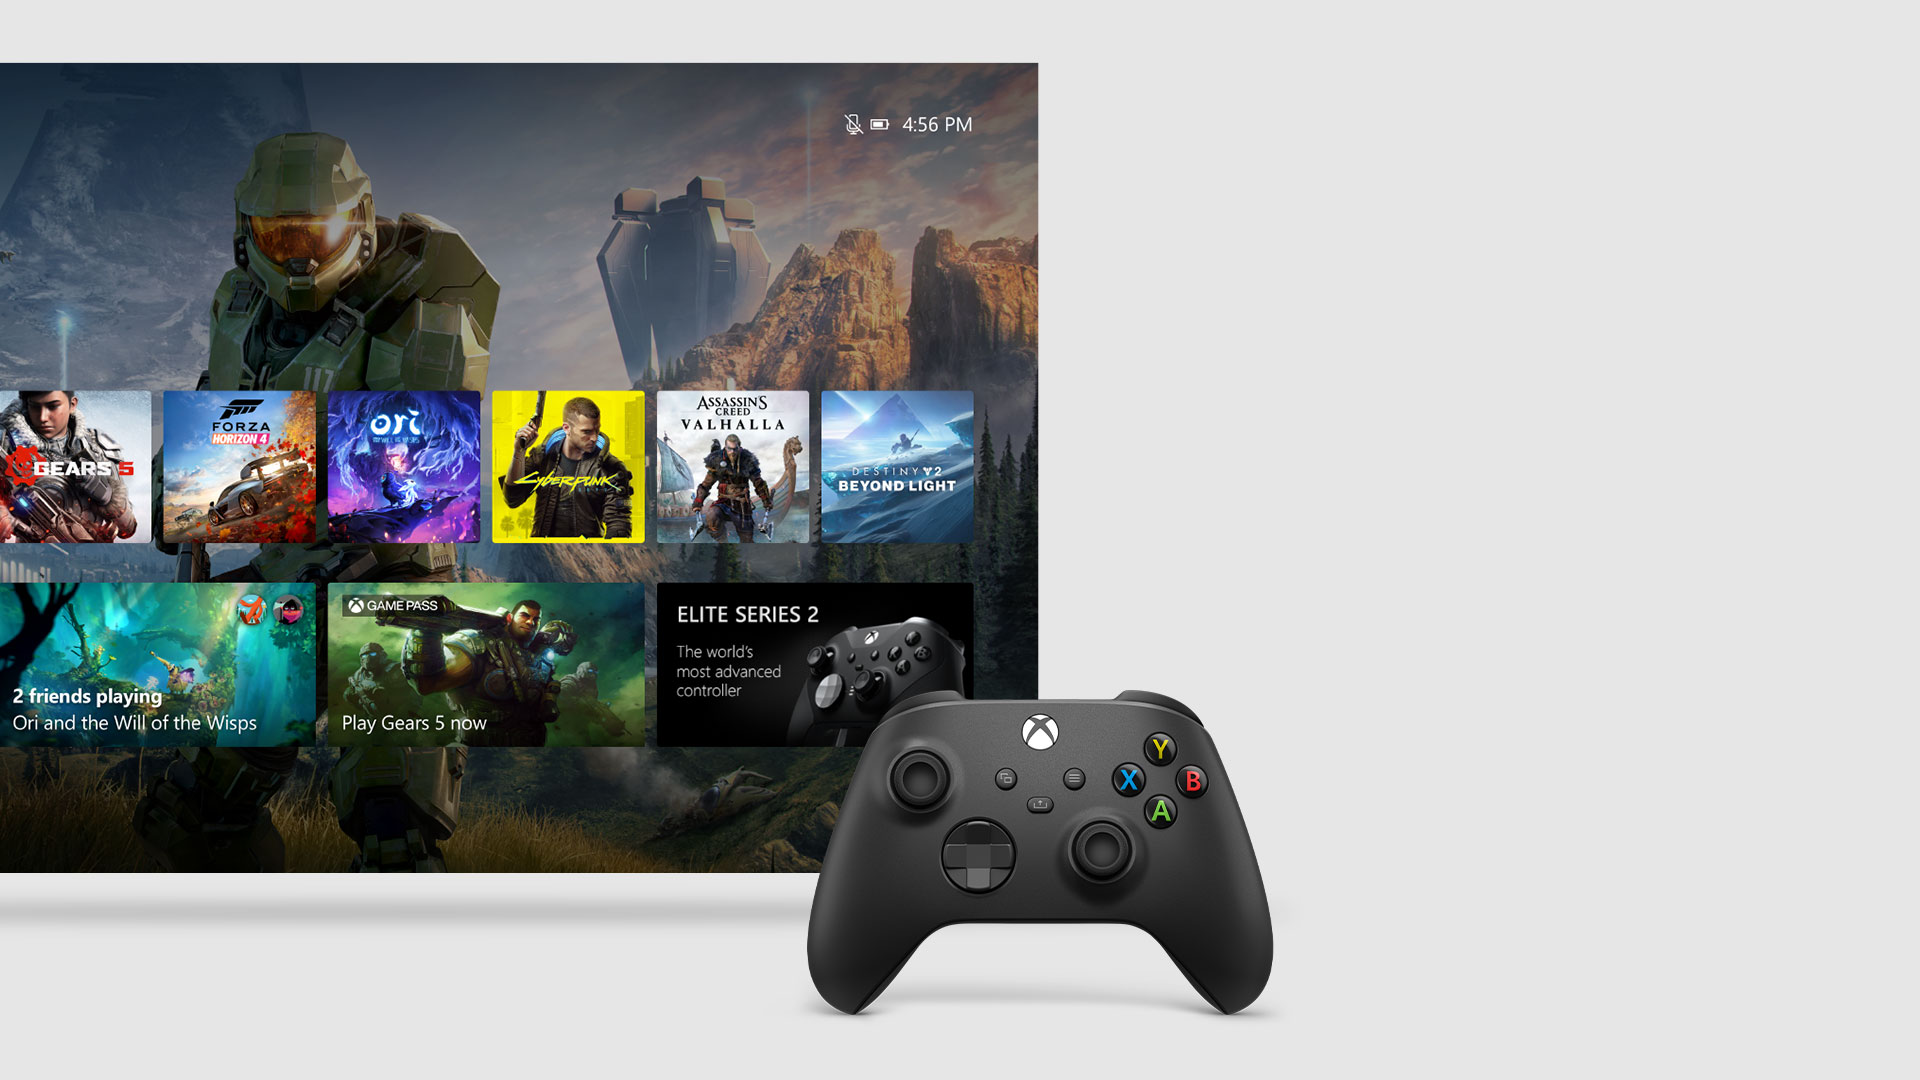 Interfaccia utente del dashboard di Xbox Series X